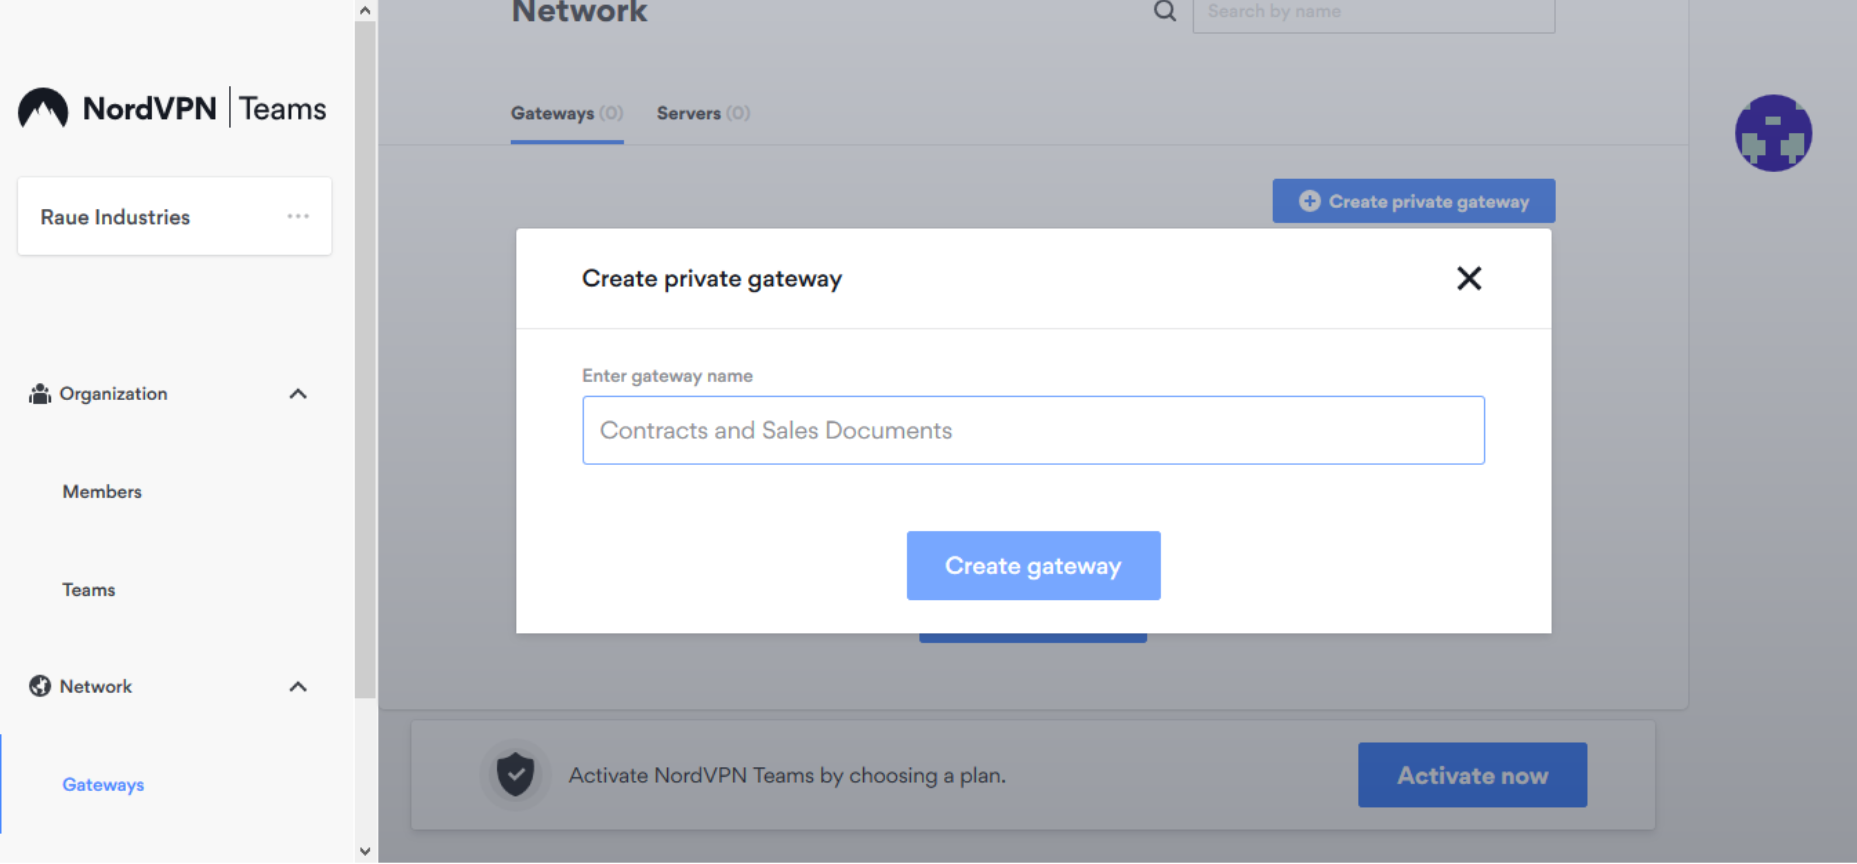 Screenshot of NordVPN Teams create private gateway